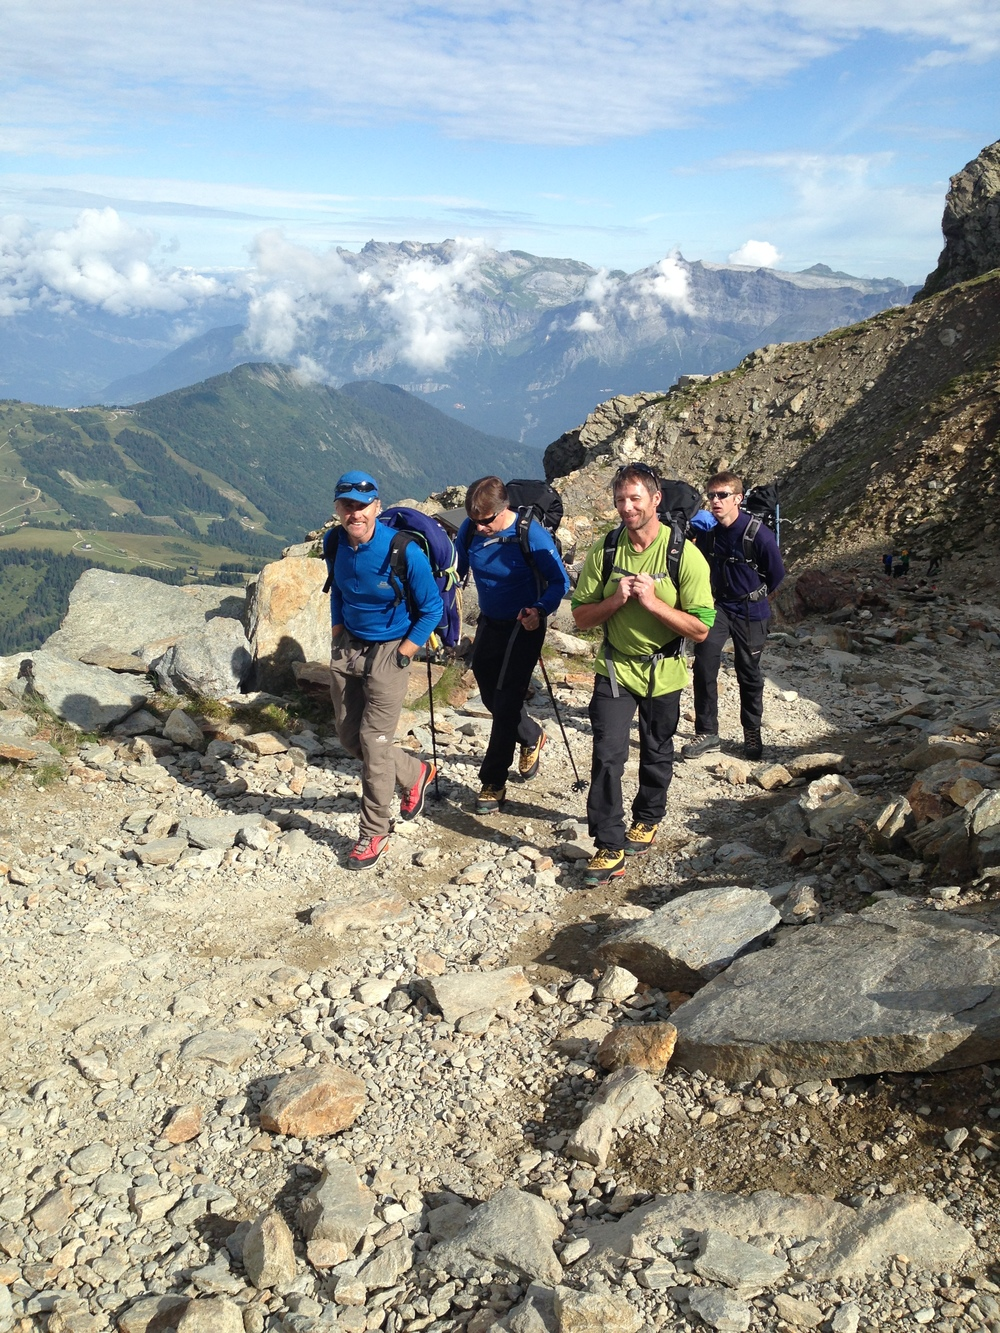 Walking up to theTête Rousse hut from the Nid d'Aigle train station